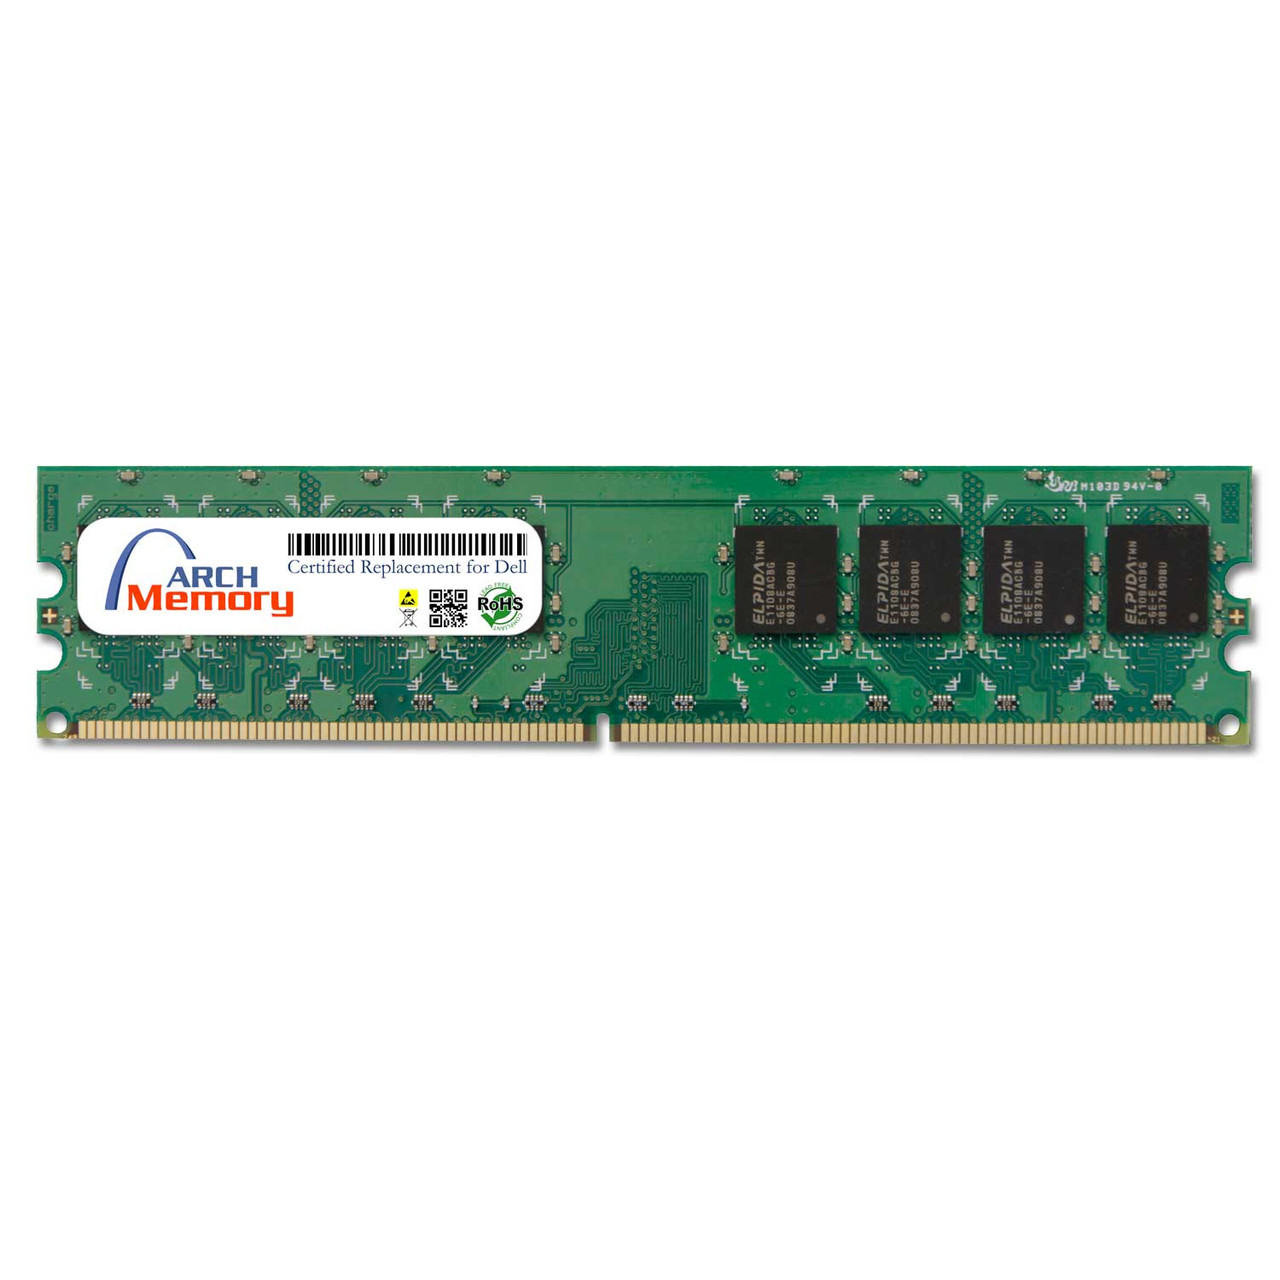 Certified for Dell Memory ddr2 ram